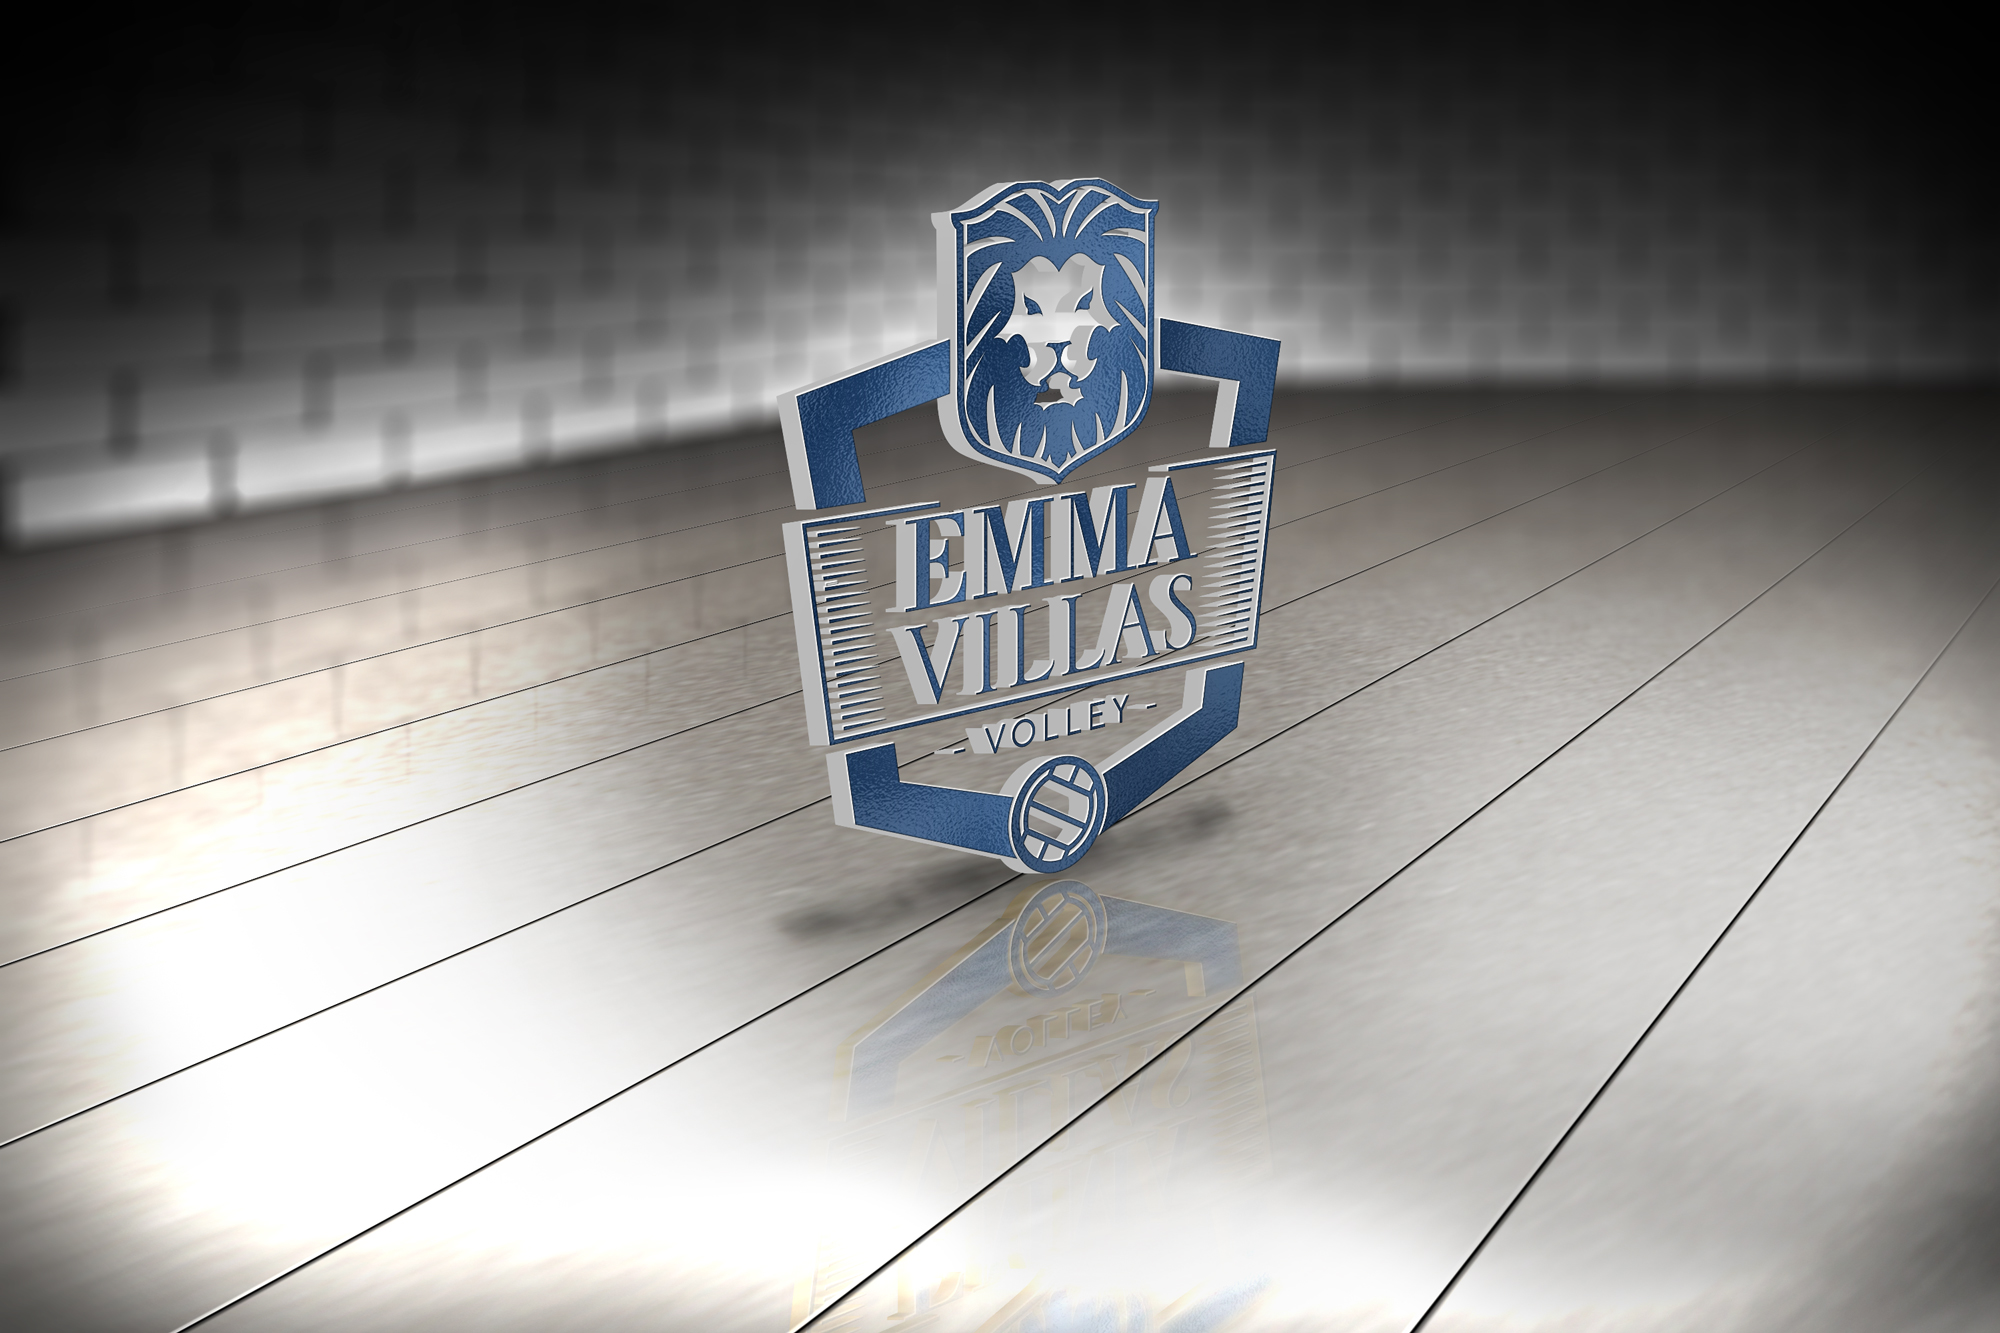 emma-villas-volley-logo